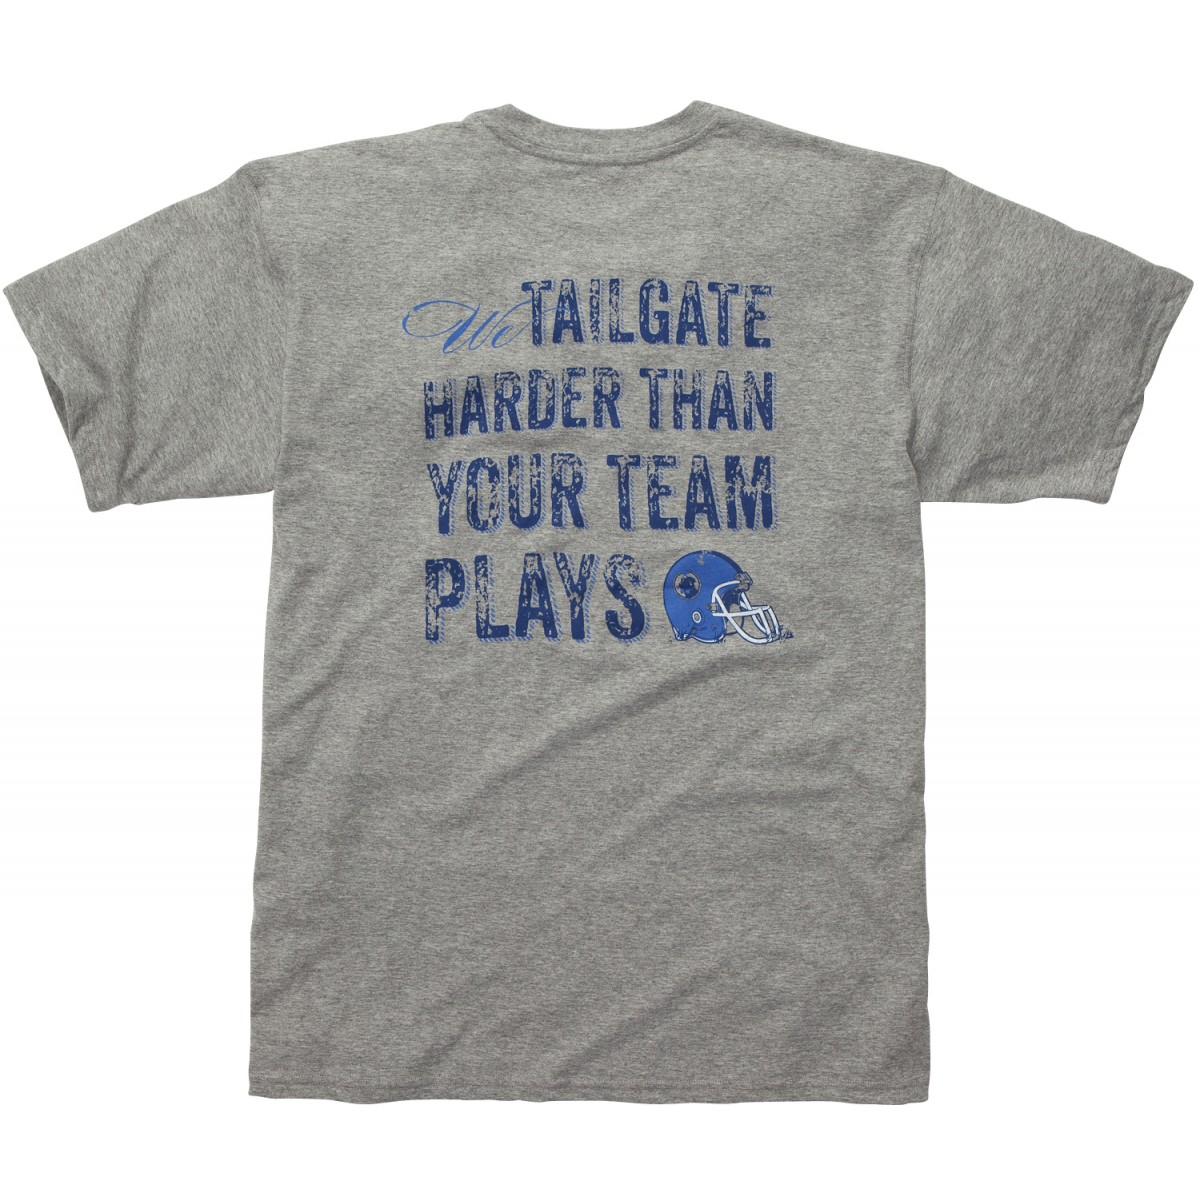 We Tailgate Harder - Blue